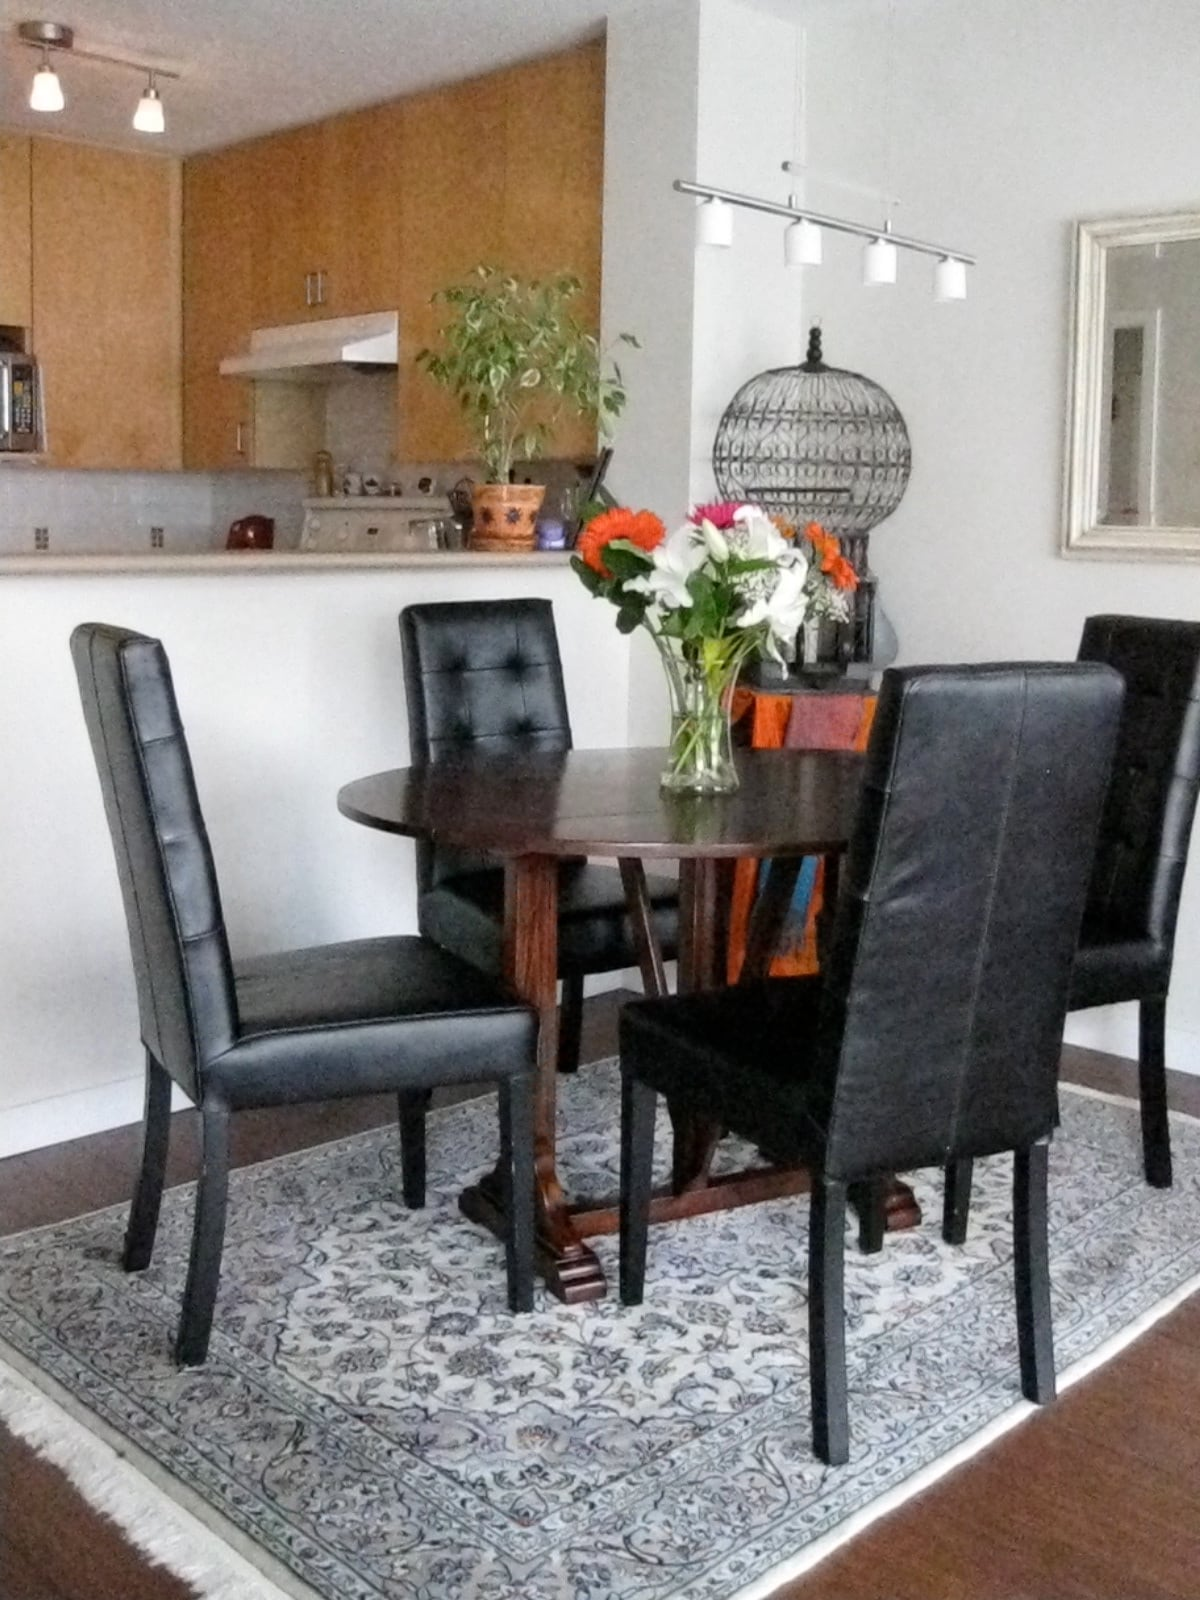 Fine dinning for a party of 6. The dining table can extend to dine 6.